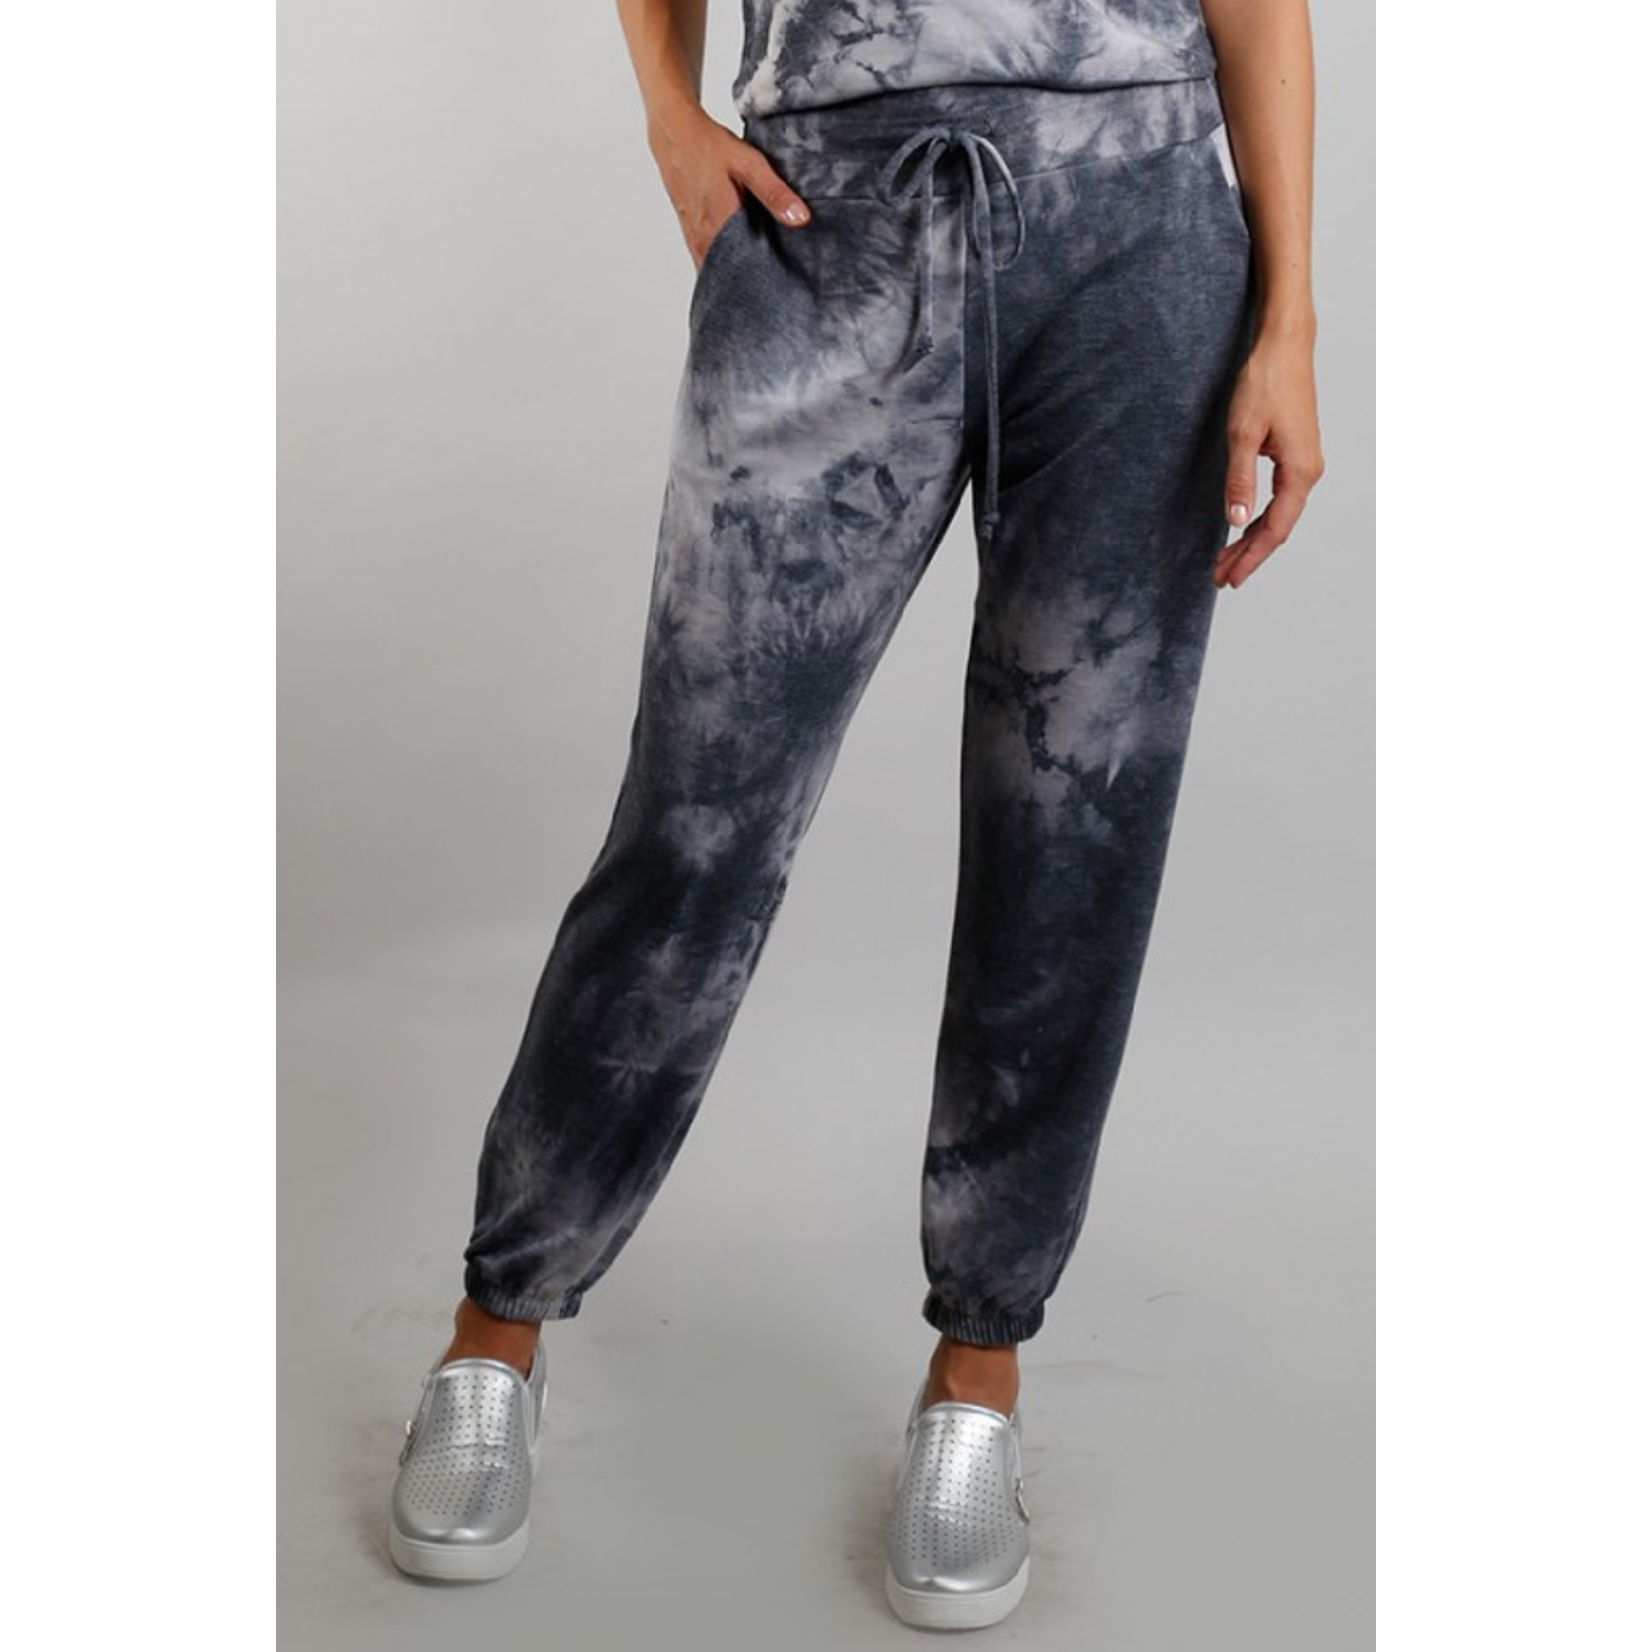 Coin 1804 French Terry Tie Dye Jogger